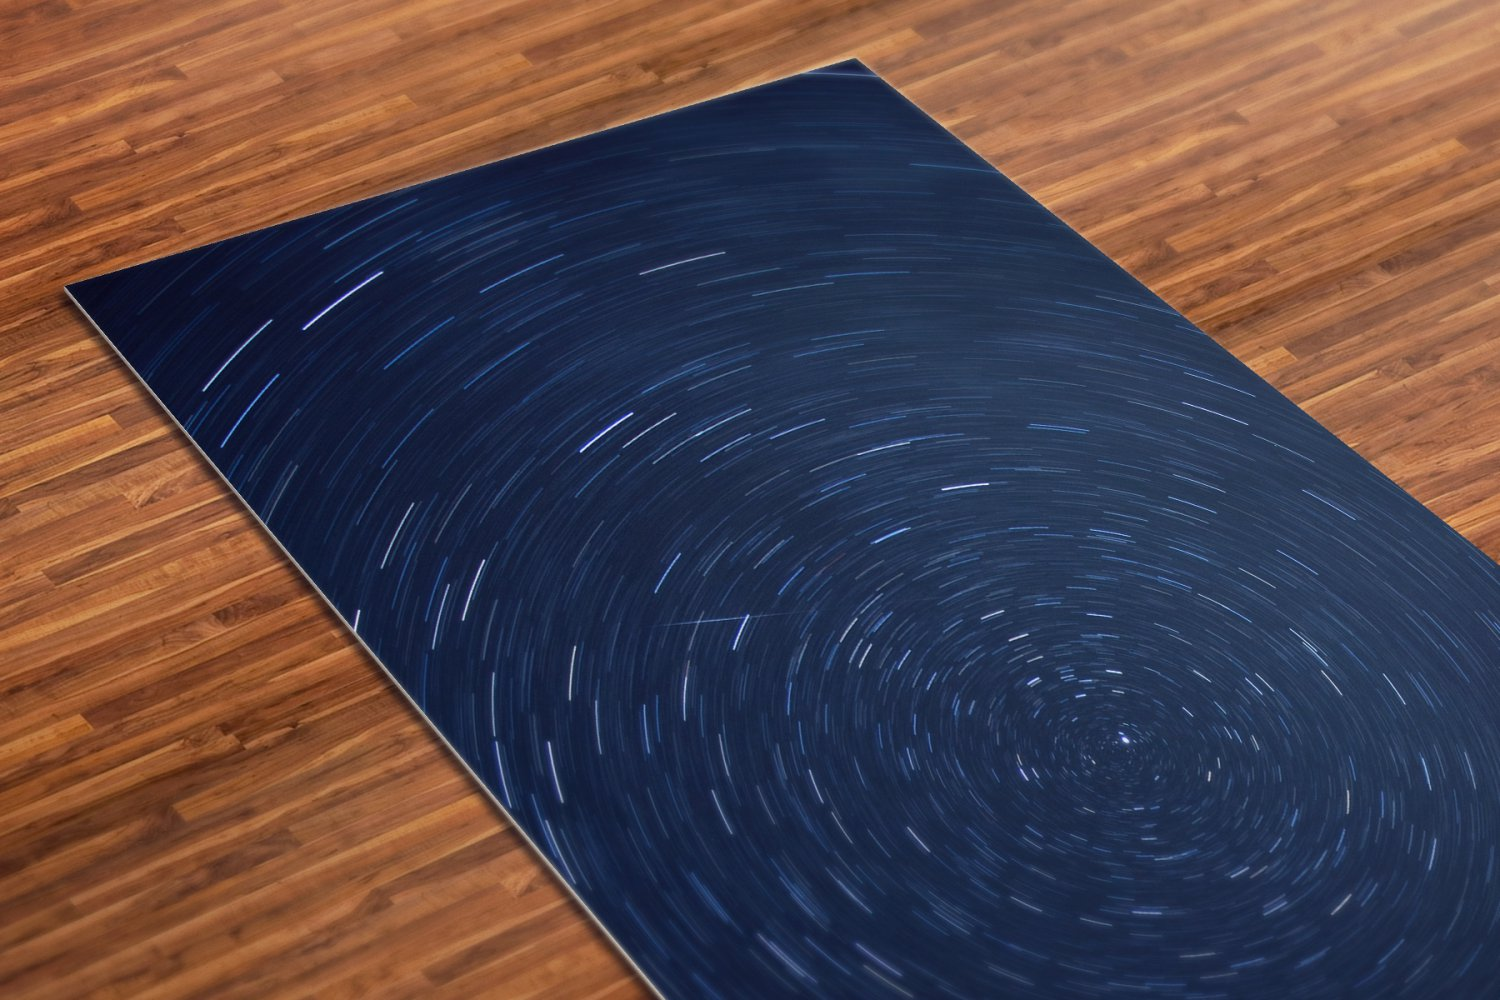 Stars Printed Yoga Mat Thick 5 mm 24 x 72 Pilates Blue Decor Rug Gift Fitness Exercise Meditation